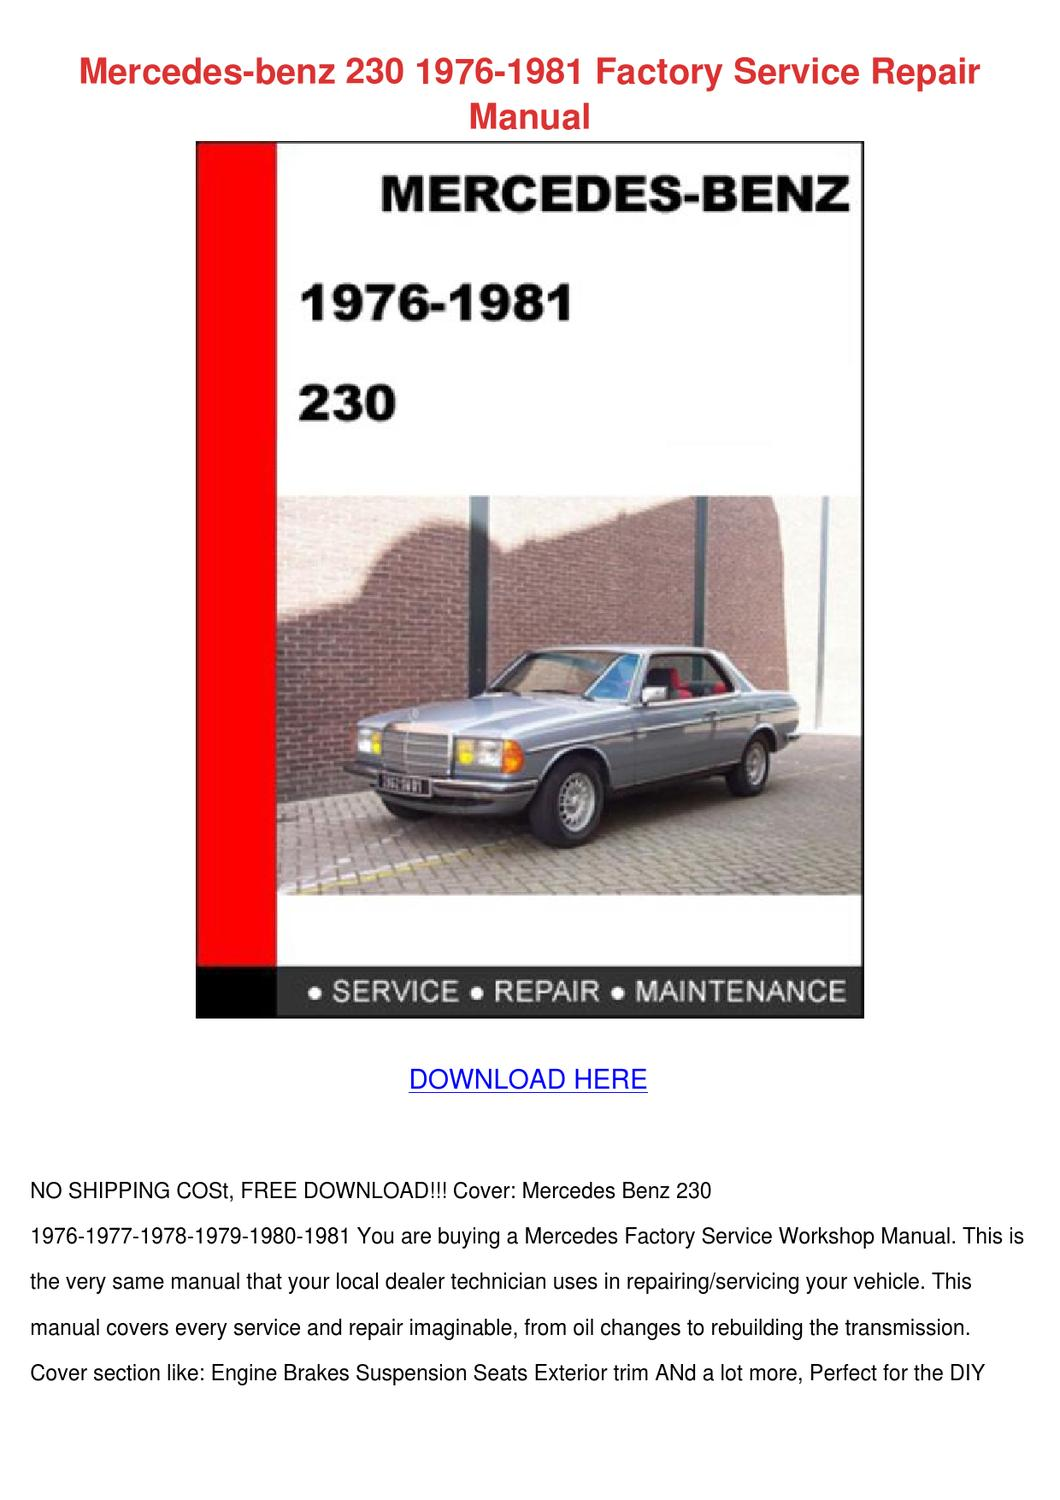 Mercedes Benz 230 1976 1981 Factory Service R by AnjaZimmerman - issuu